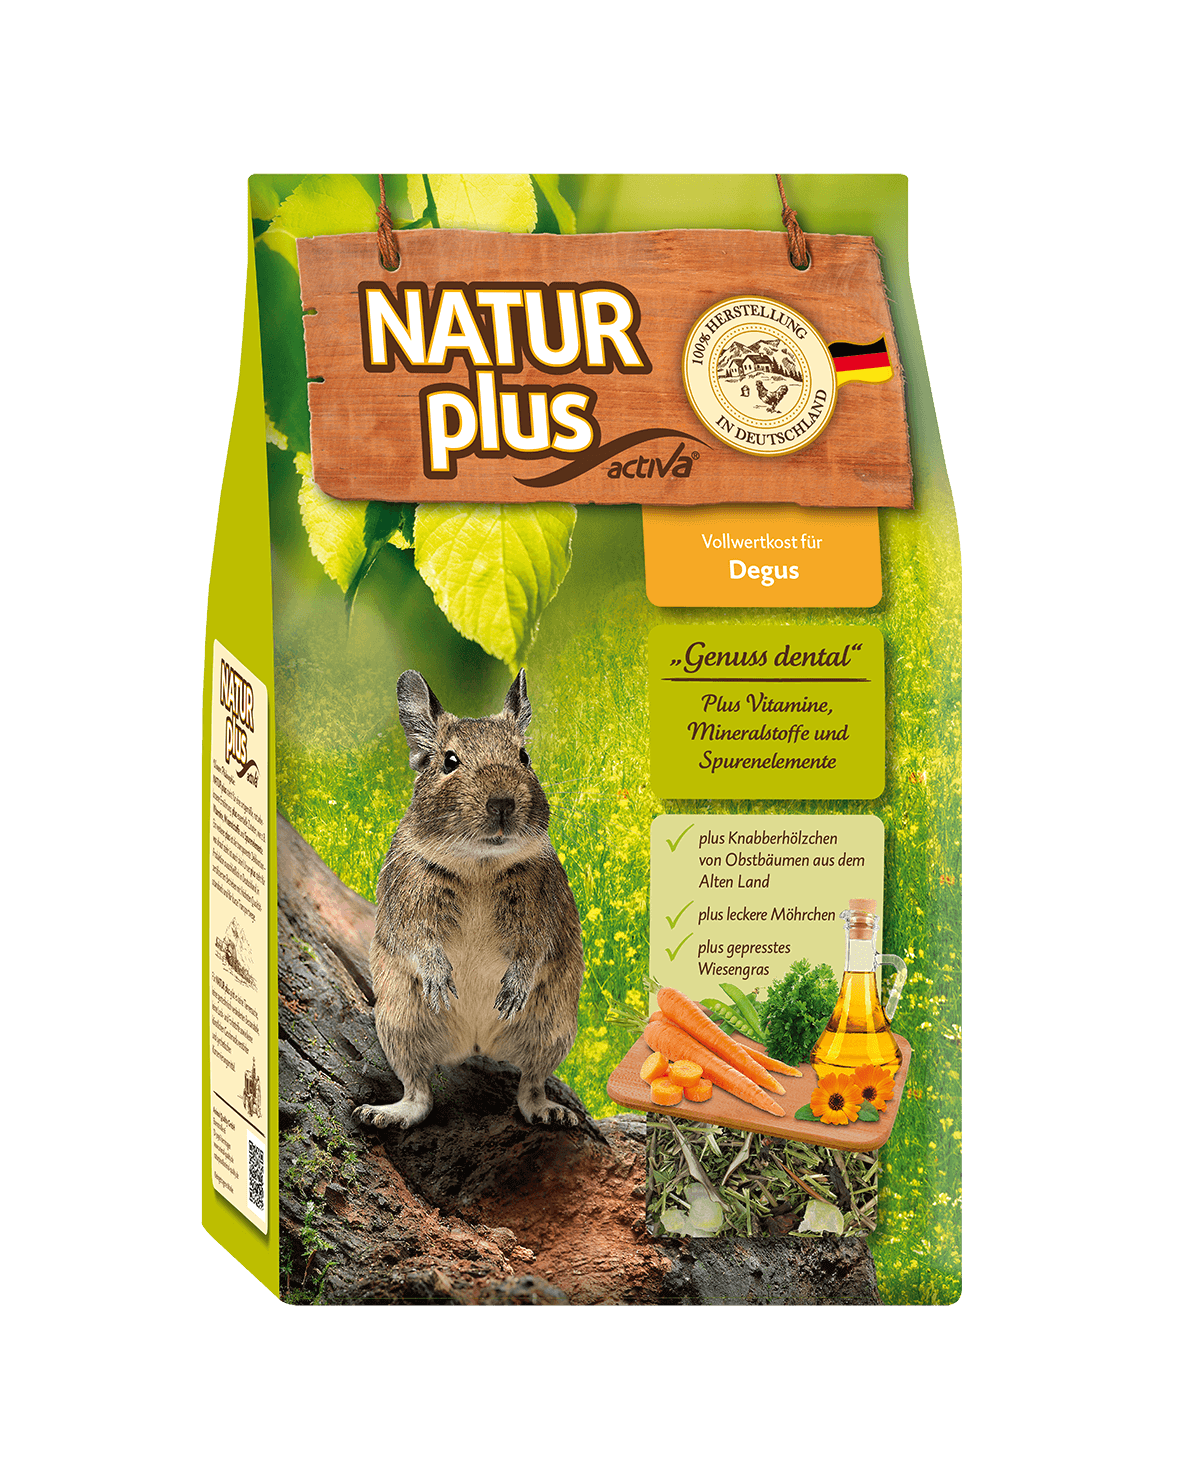 Natur plus Degu